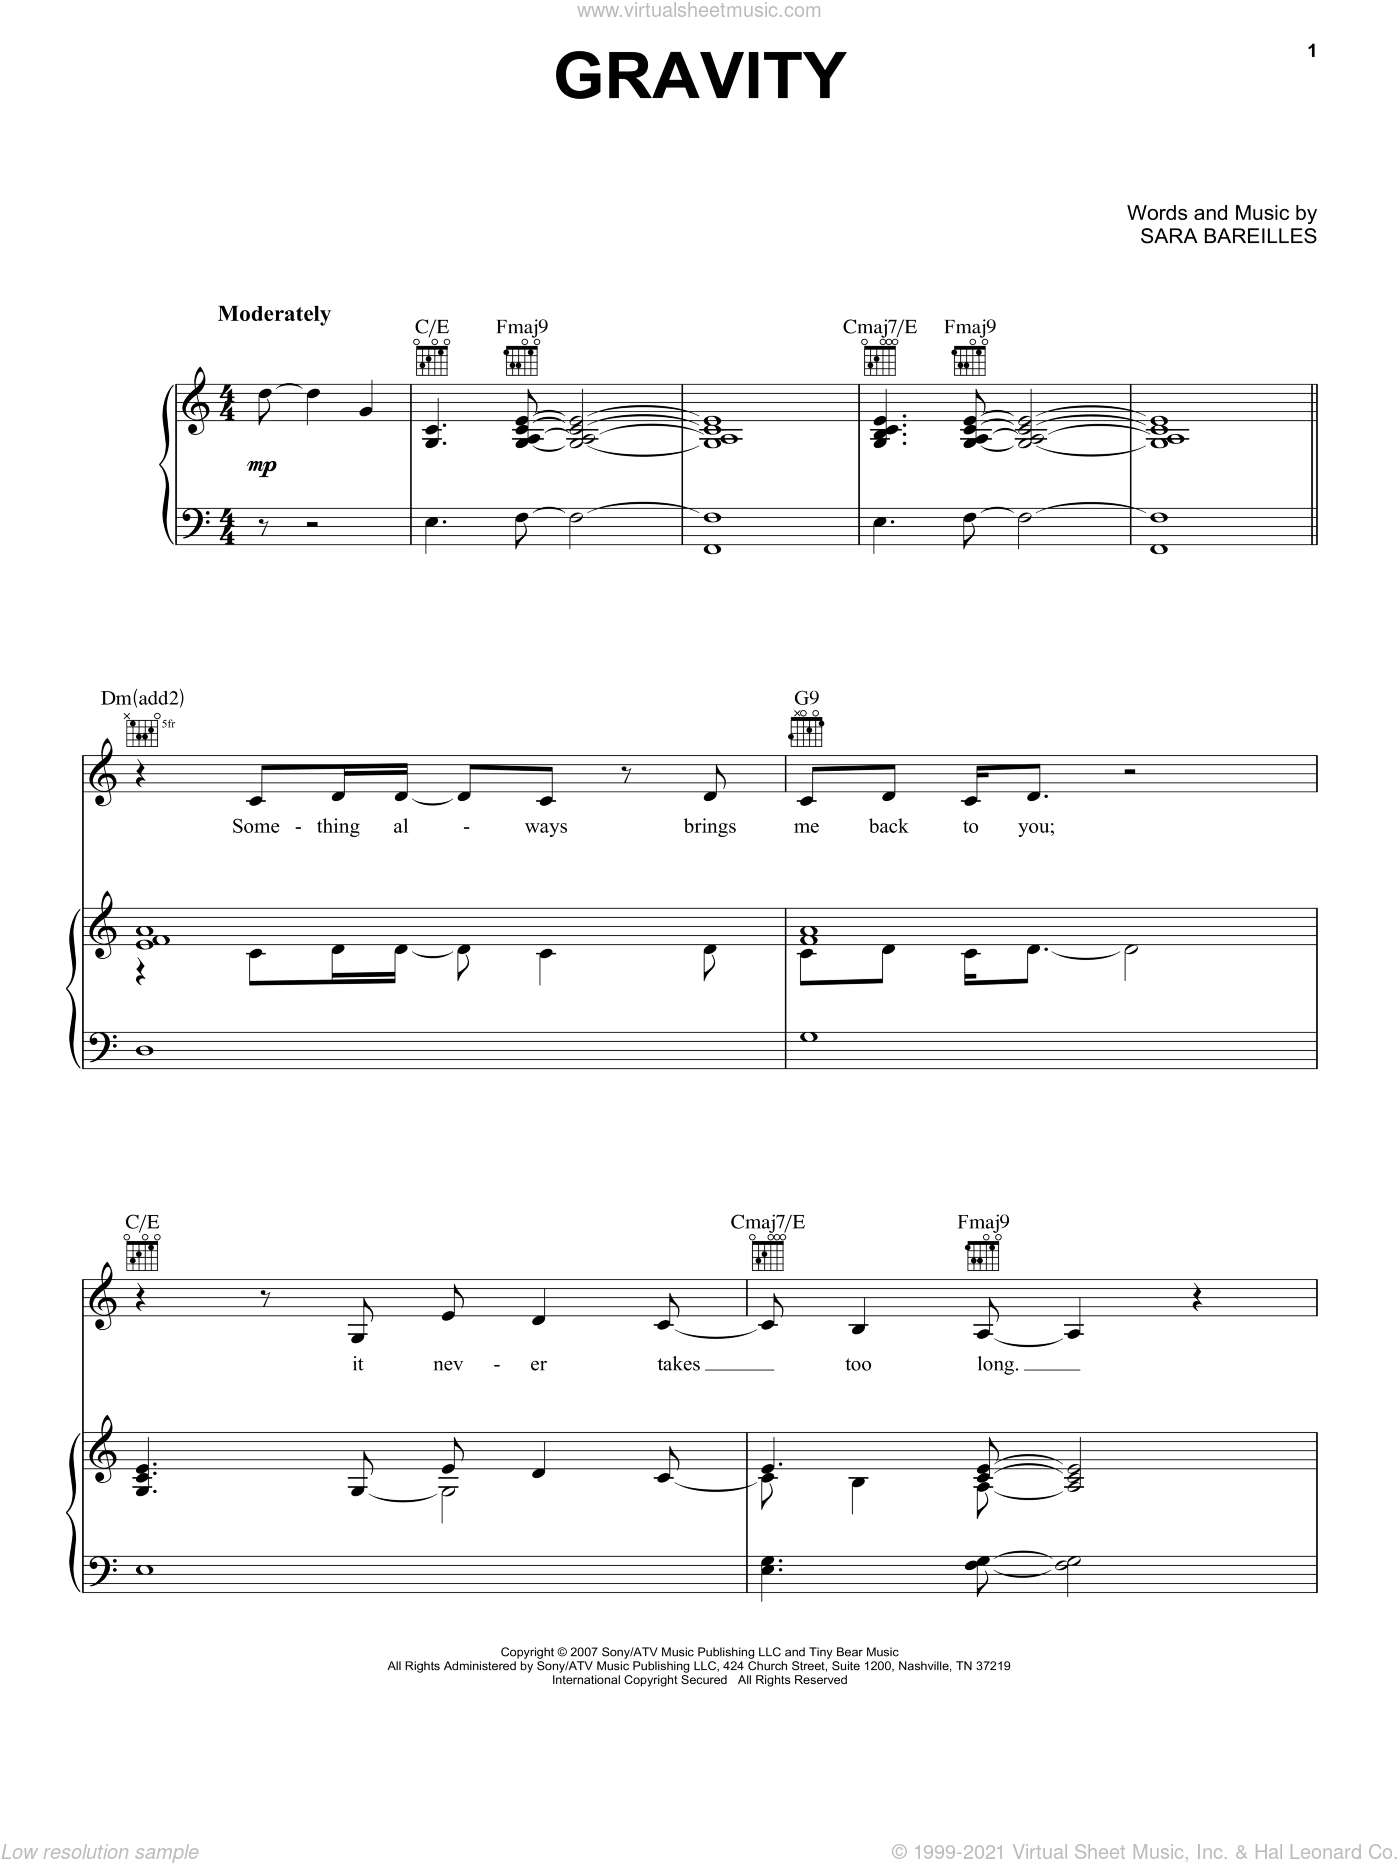 Gravity sheet music for voice, piano or guitar by Sara Bareilles